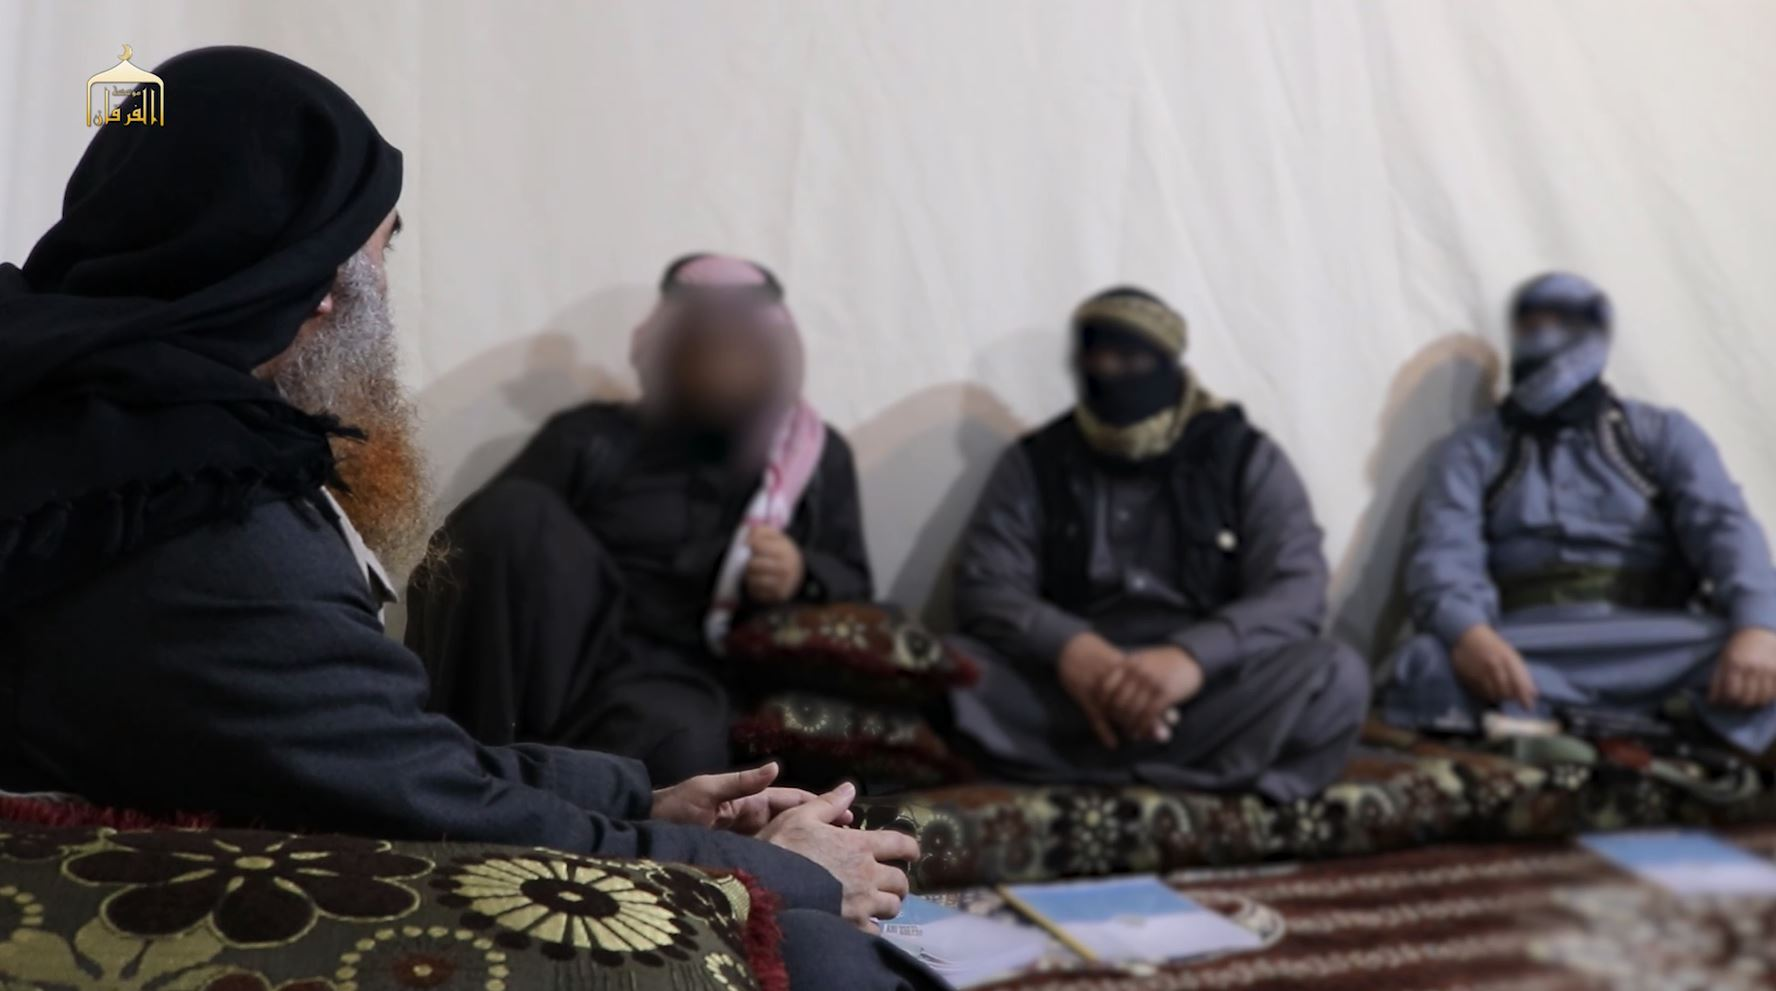 Al-Baghdadi and the three companionsseen in the video